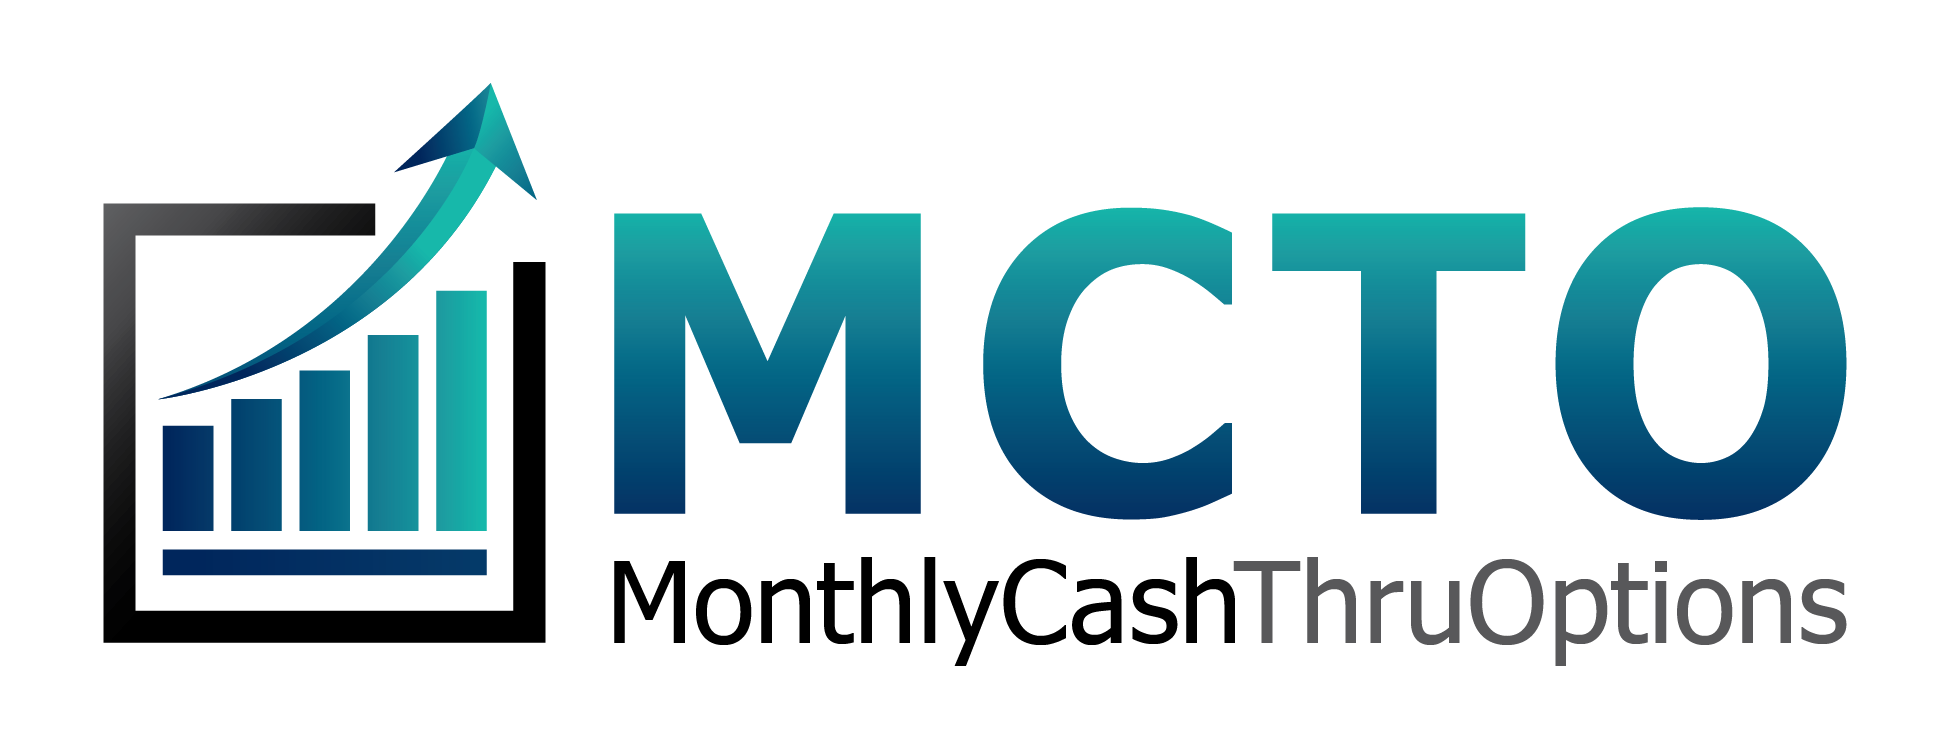 Monthly Cash Thru Options LLC